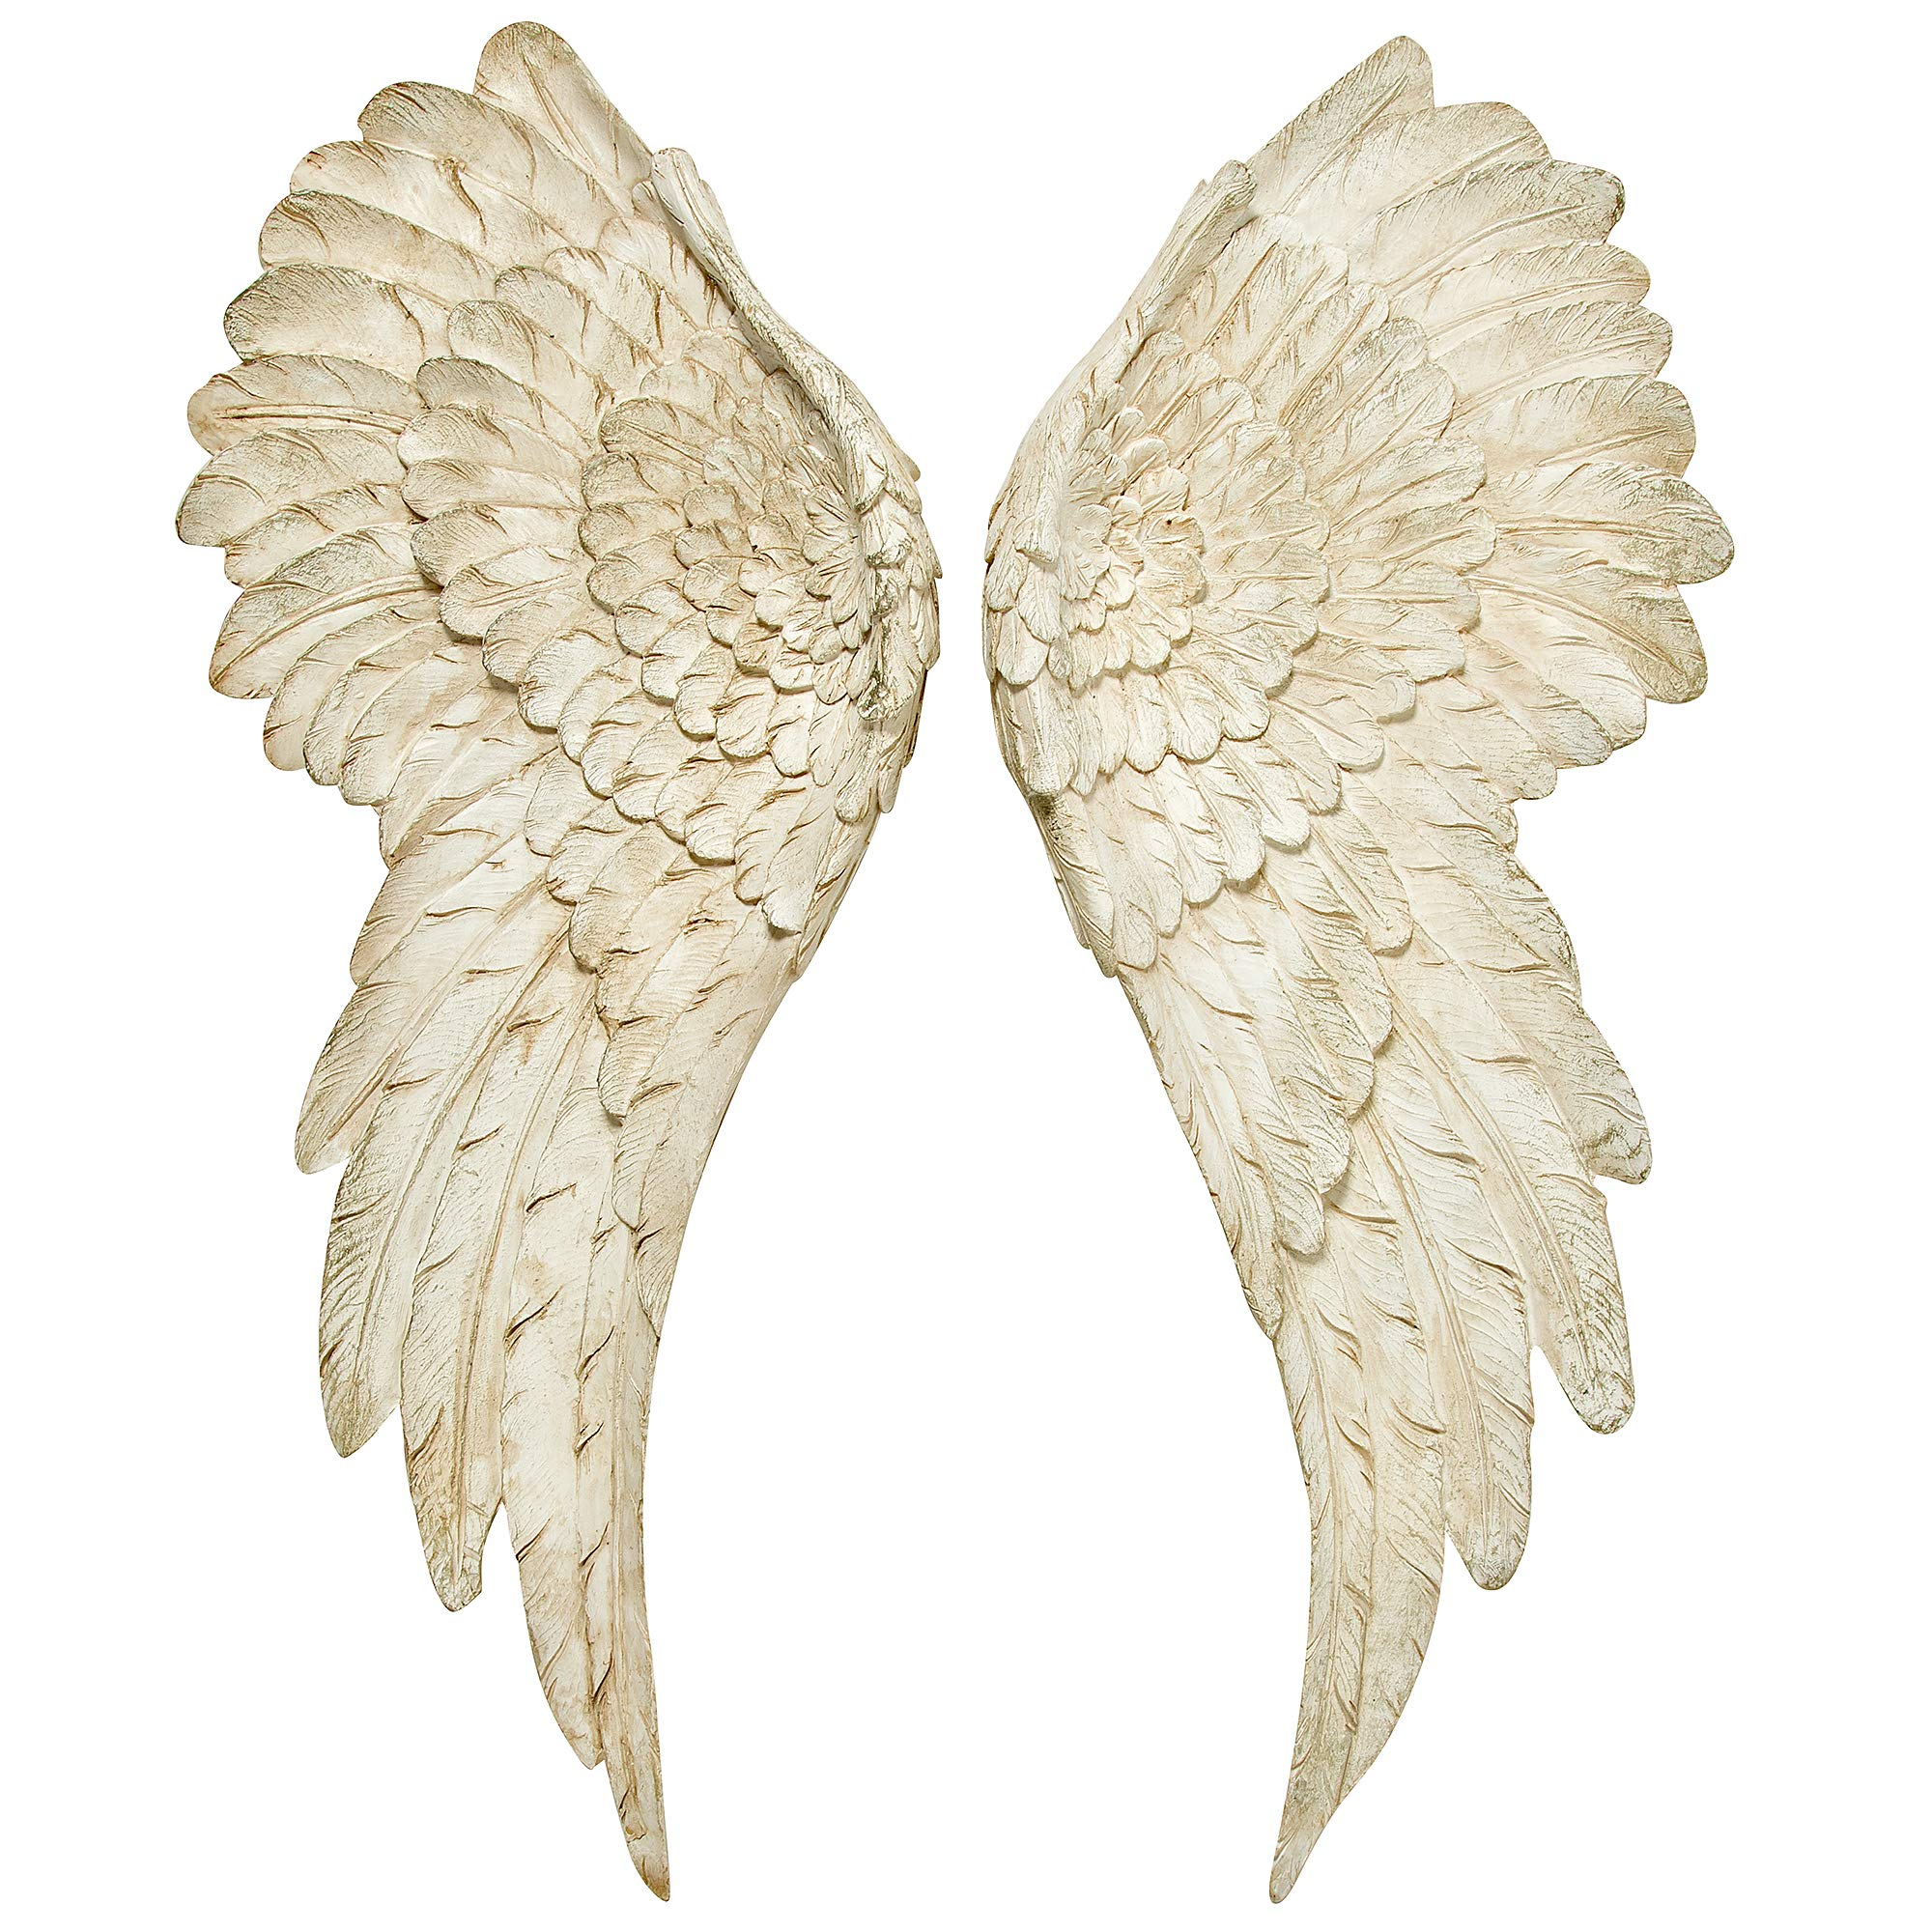 WHW Whole House Worlds Grand Tour Angel Wings, Vintage Style, Set of 2, Antique White, Artisinal Design, Hand Crafted, Bas Relief Sculptures, 21 3/4 Inches Tall by WHW Whole House Worlds